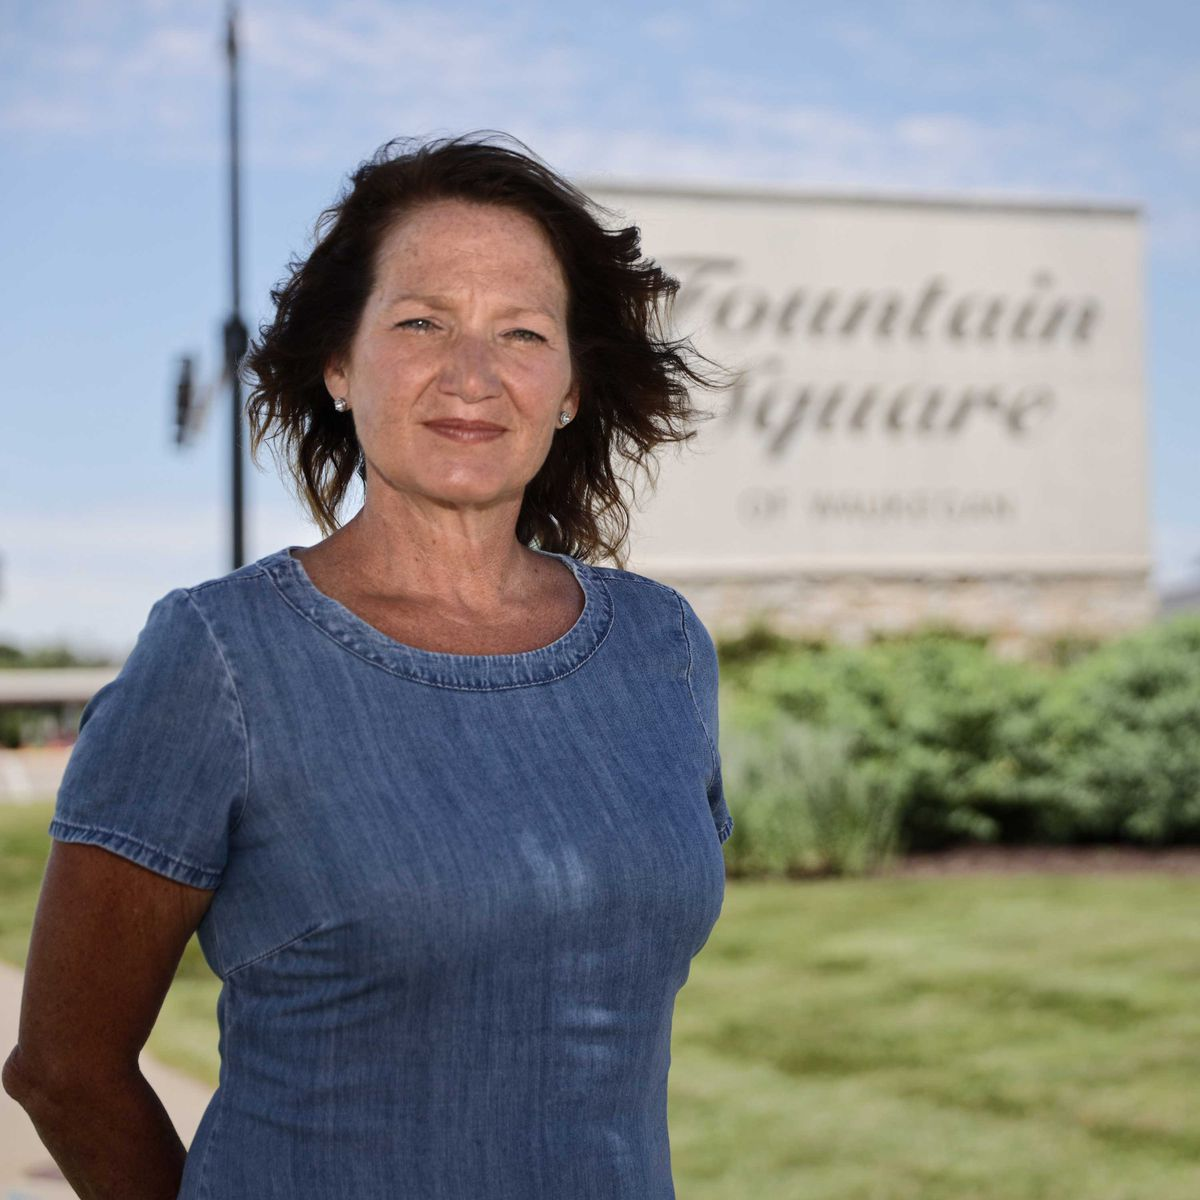 Former Waukegan Ald. and mayoral candidate Lisa May at Fountain Square of Waukegan mall, which is across from a possible casino site.